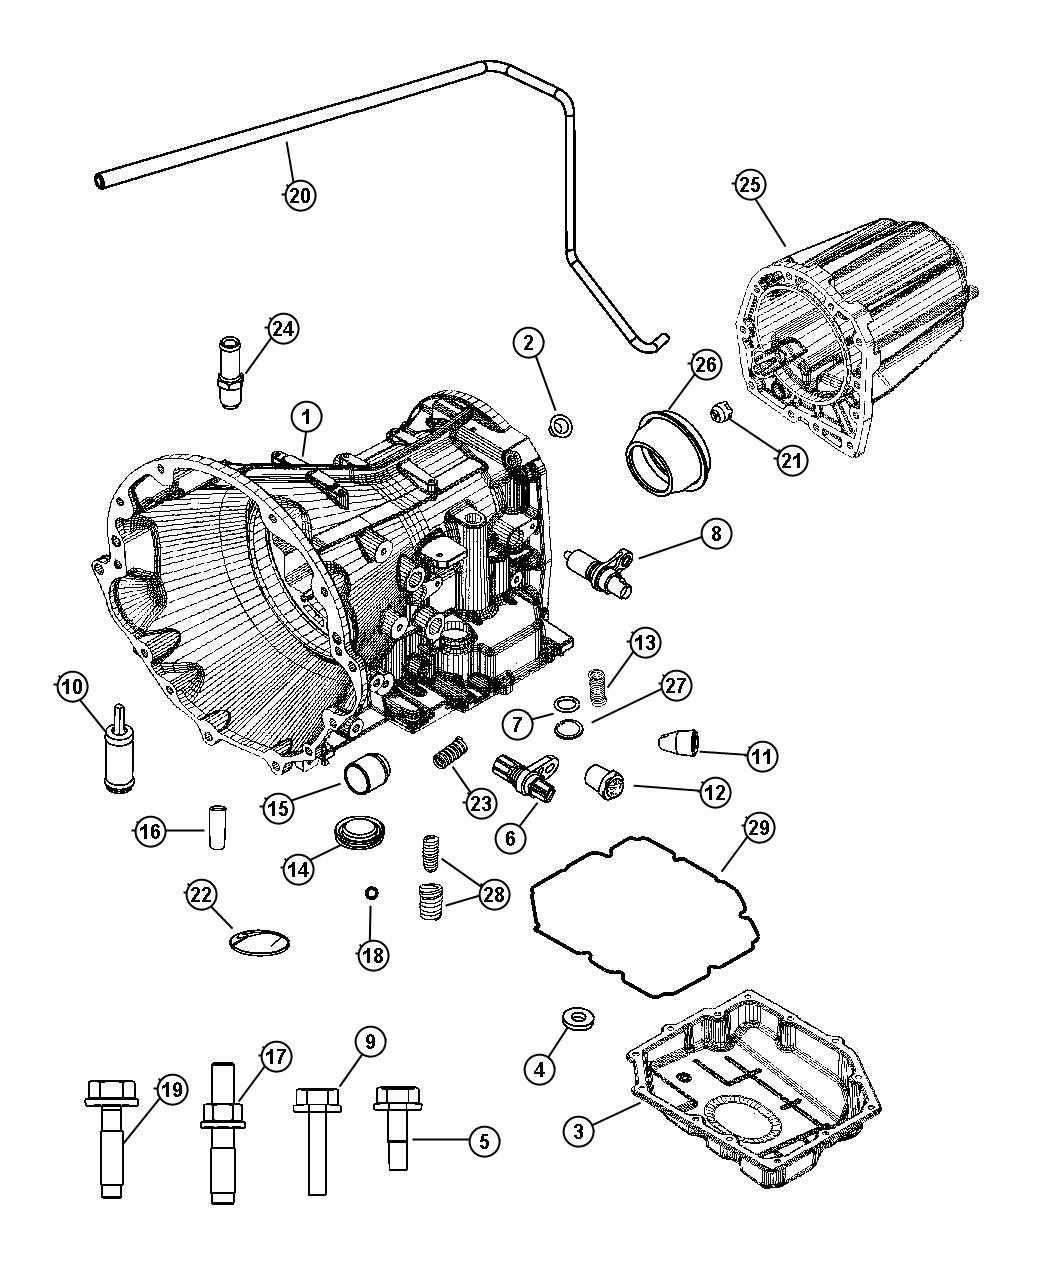 Dodge Transmission Parts Diagram on 2004 dodge stratus parts diagram